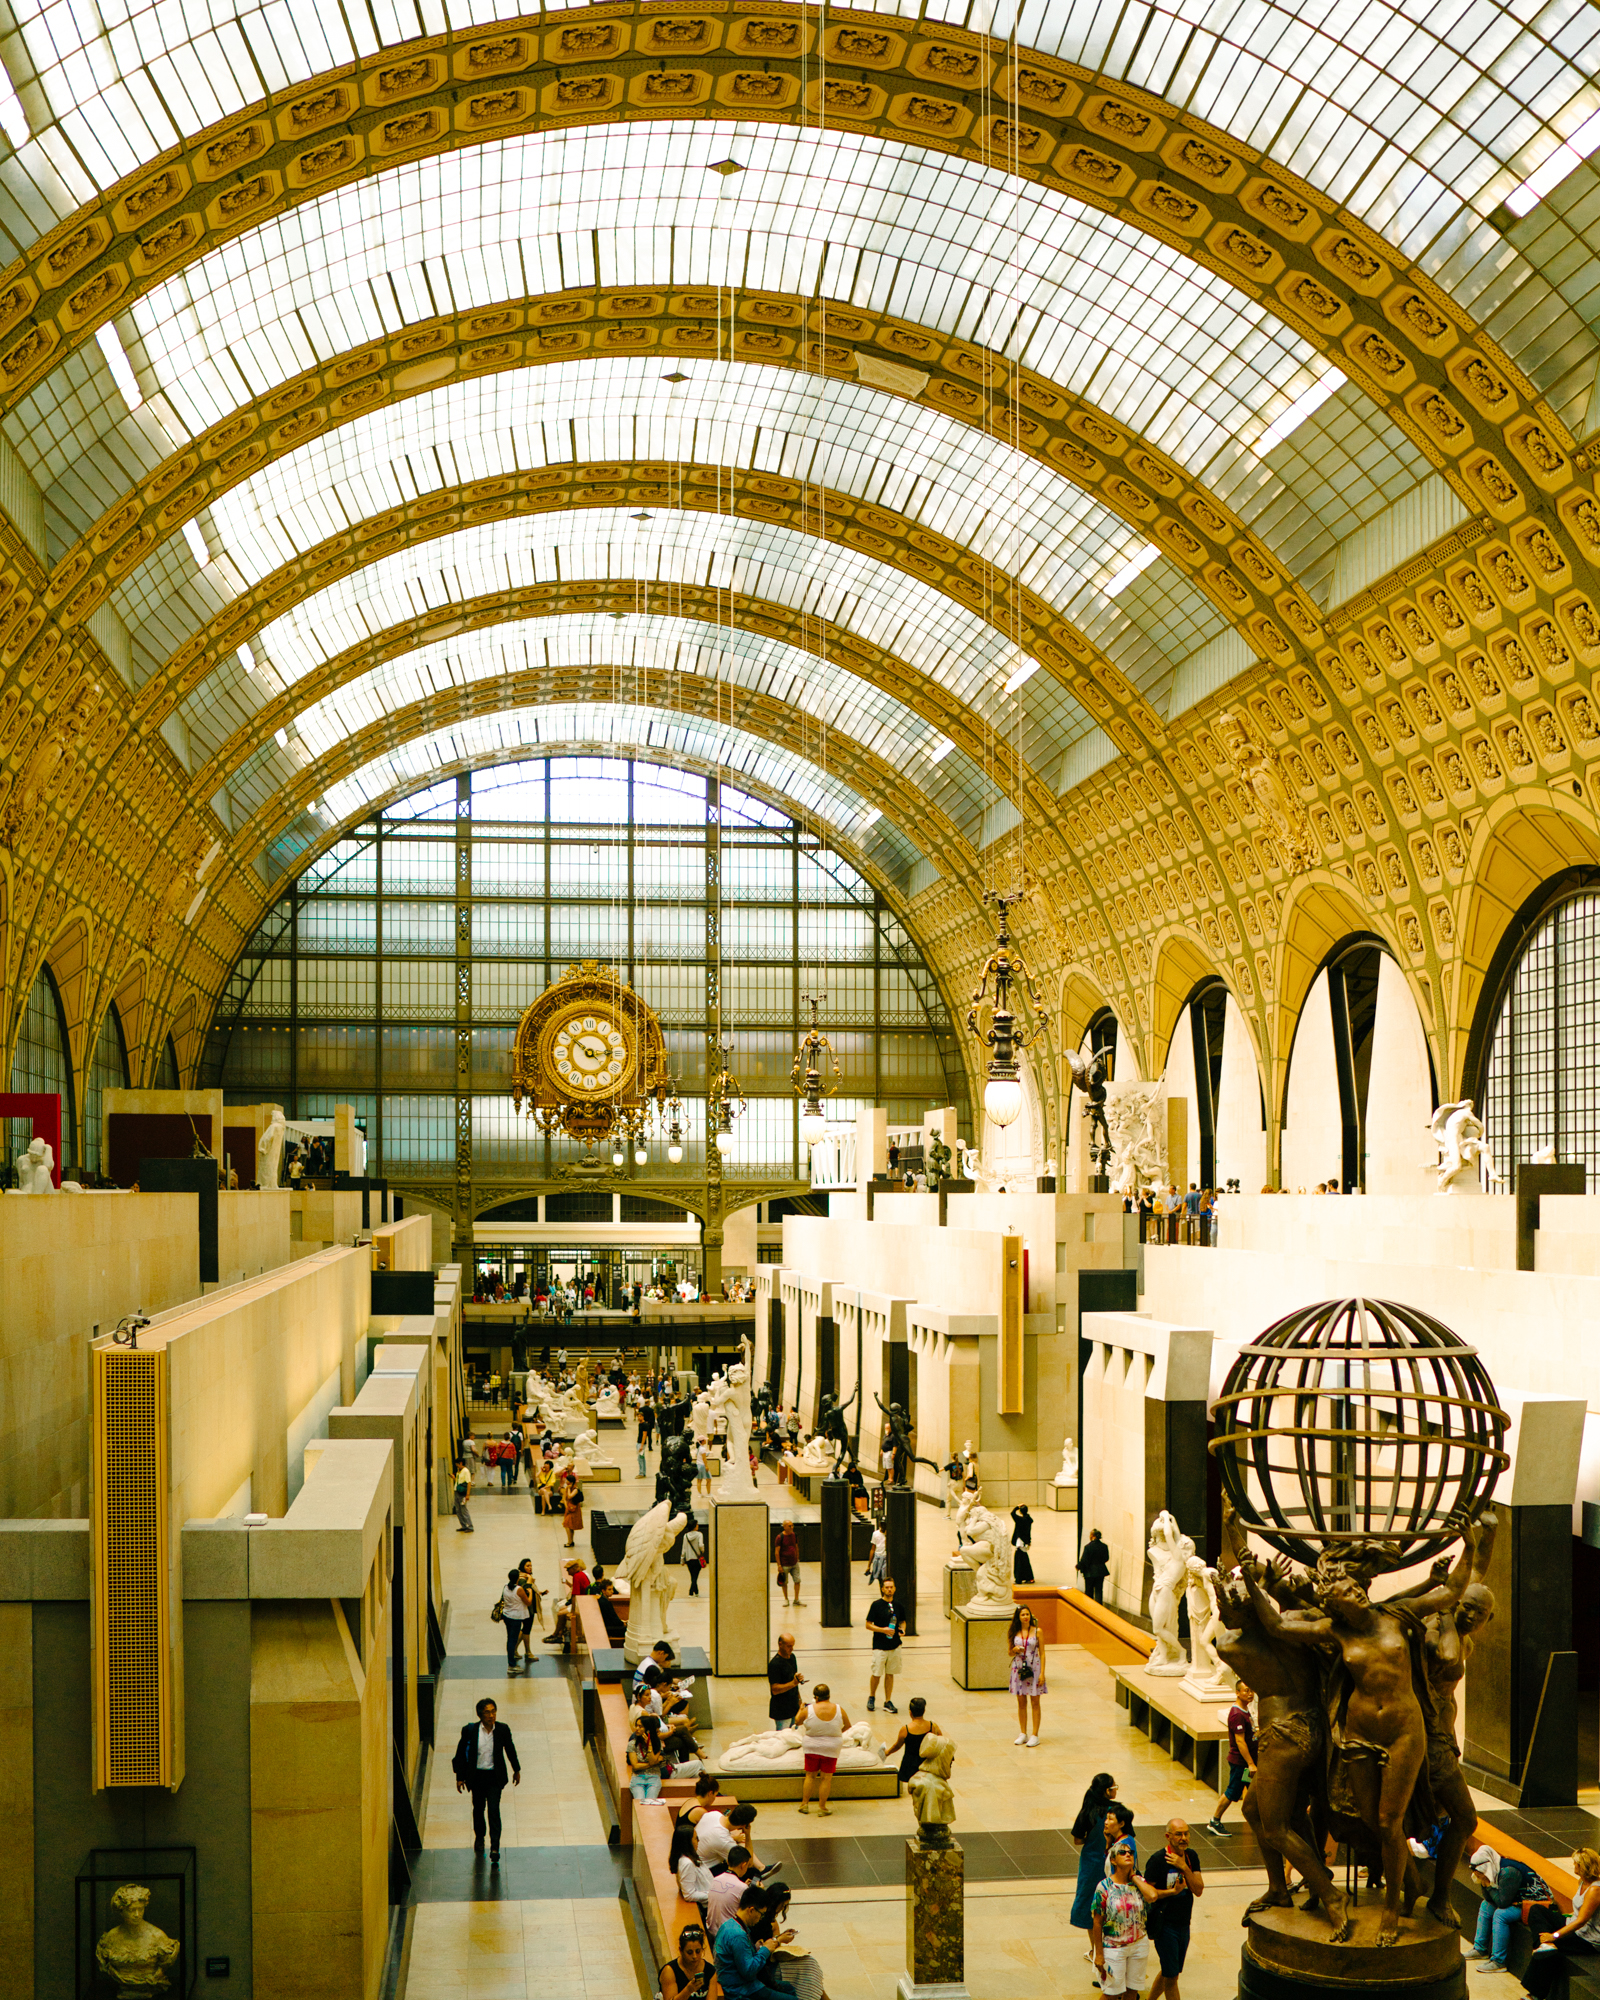 The Musee D'Orsay in Paris